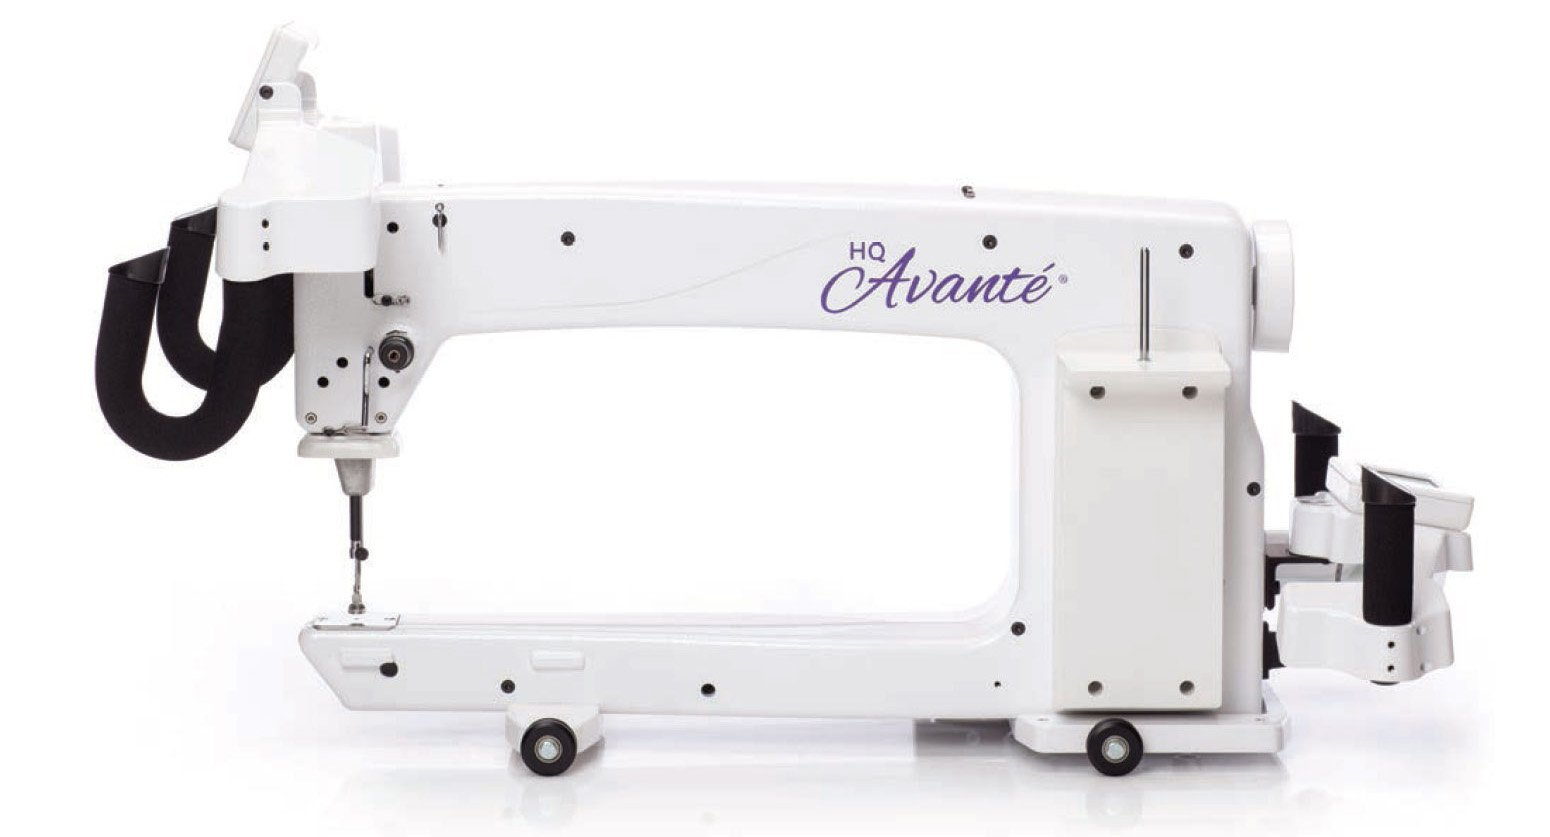 HQ AVANTE with Quilt frame